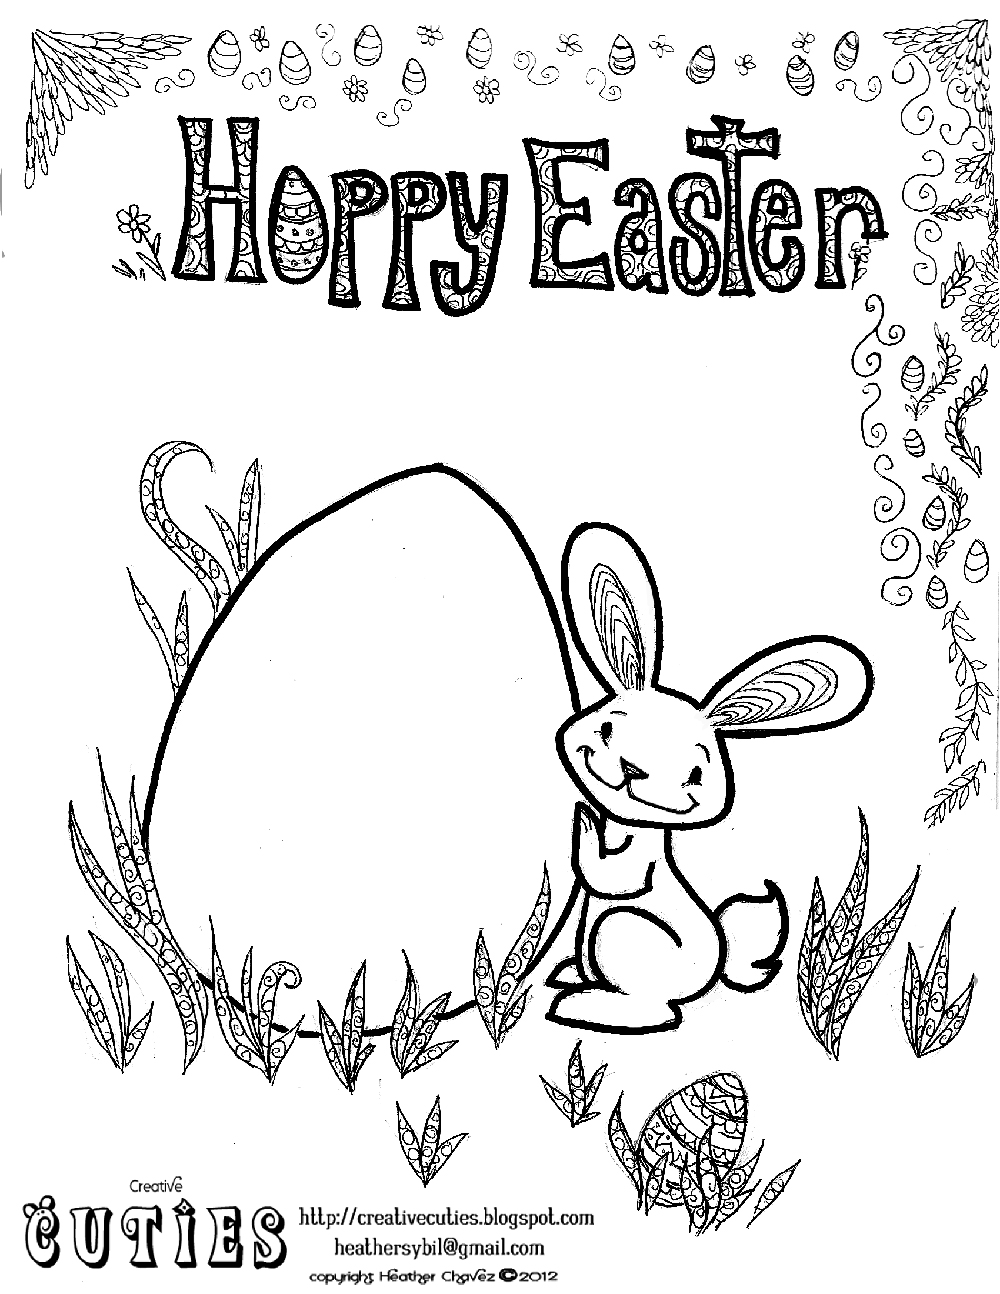 Creative Cuties: Easter Bunny Coloring page